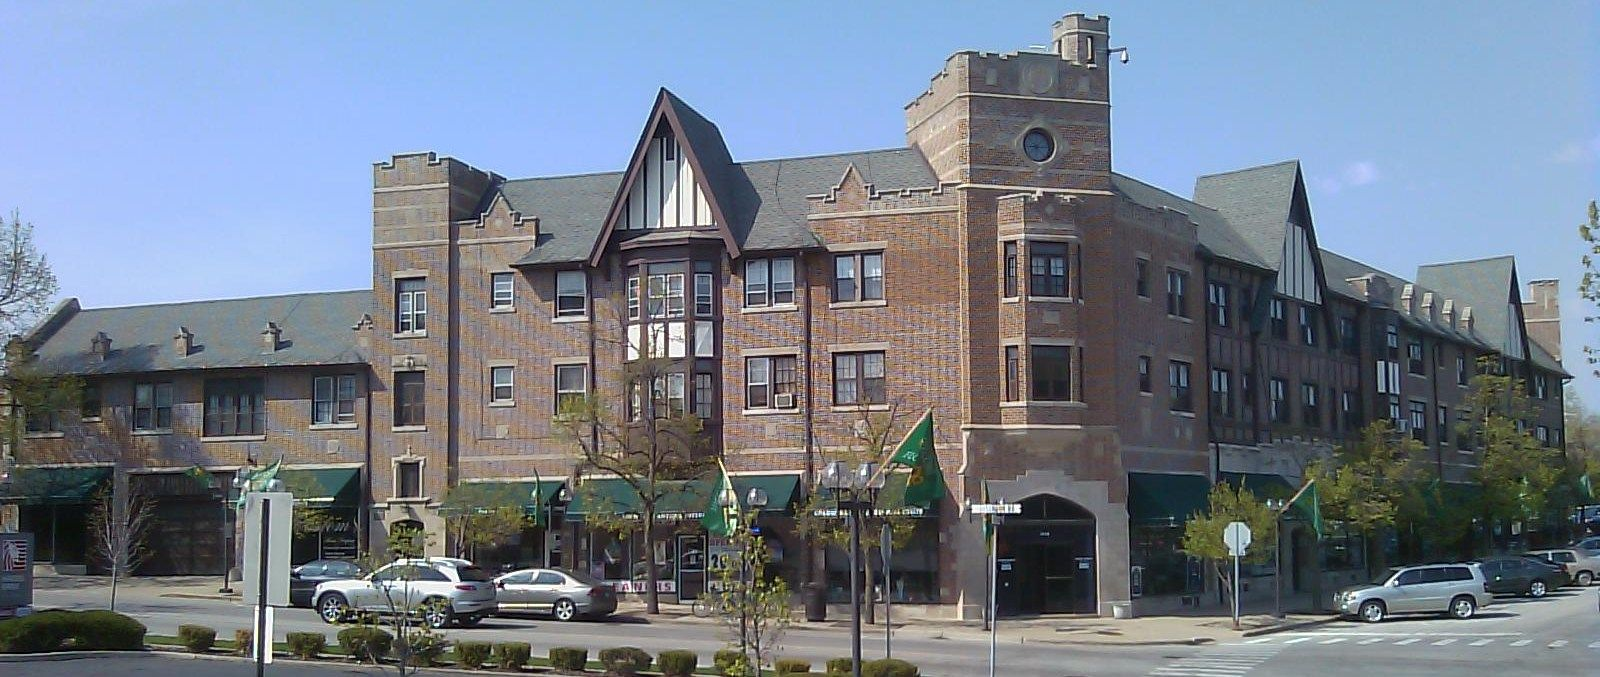 1038 Sterling, Flossmoor, IL Street view, Building, Chicago